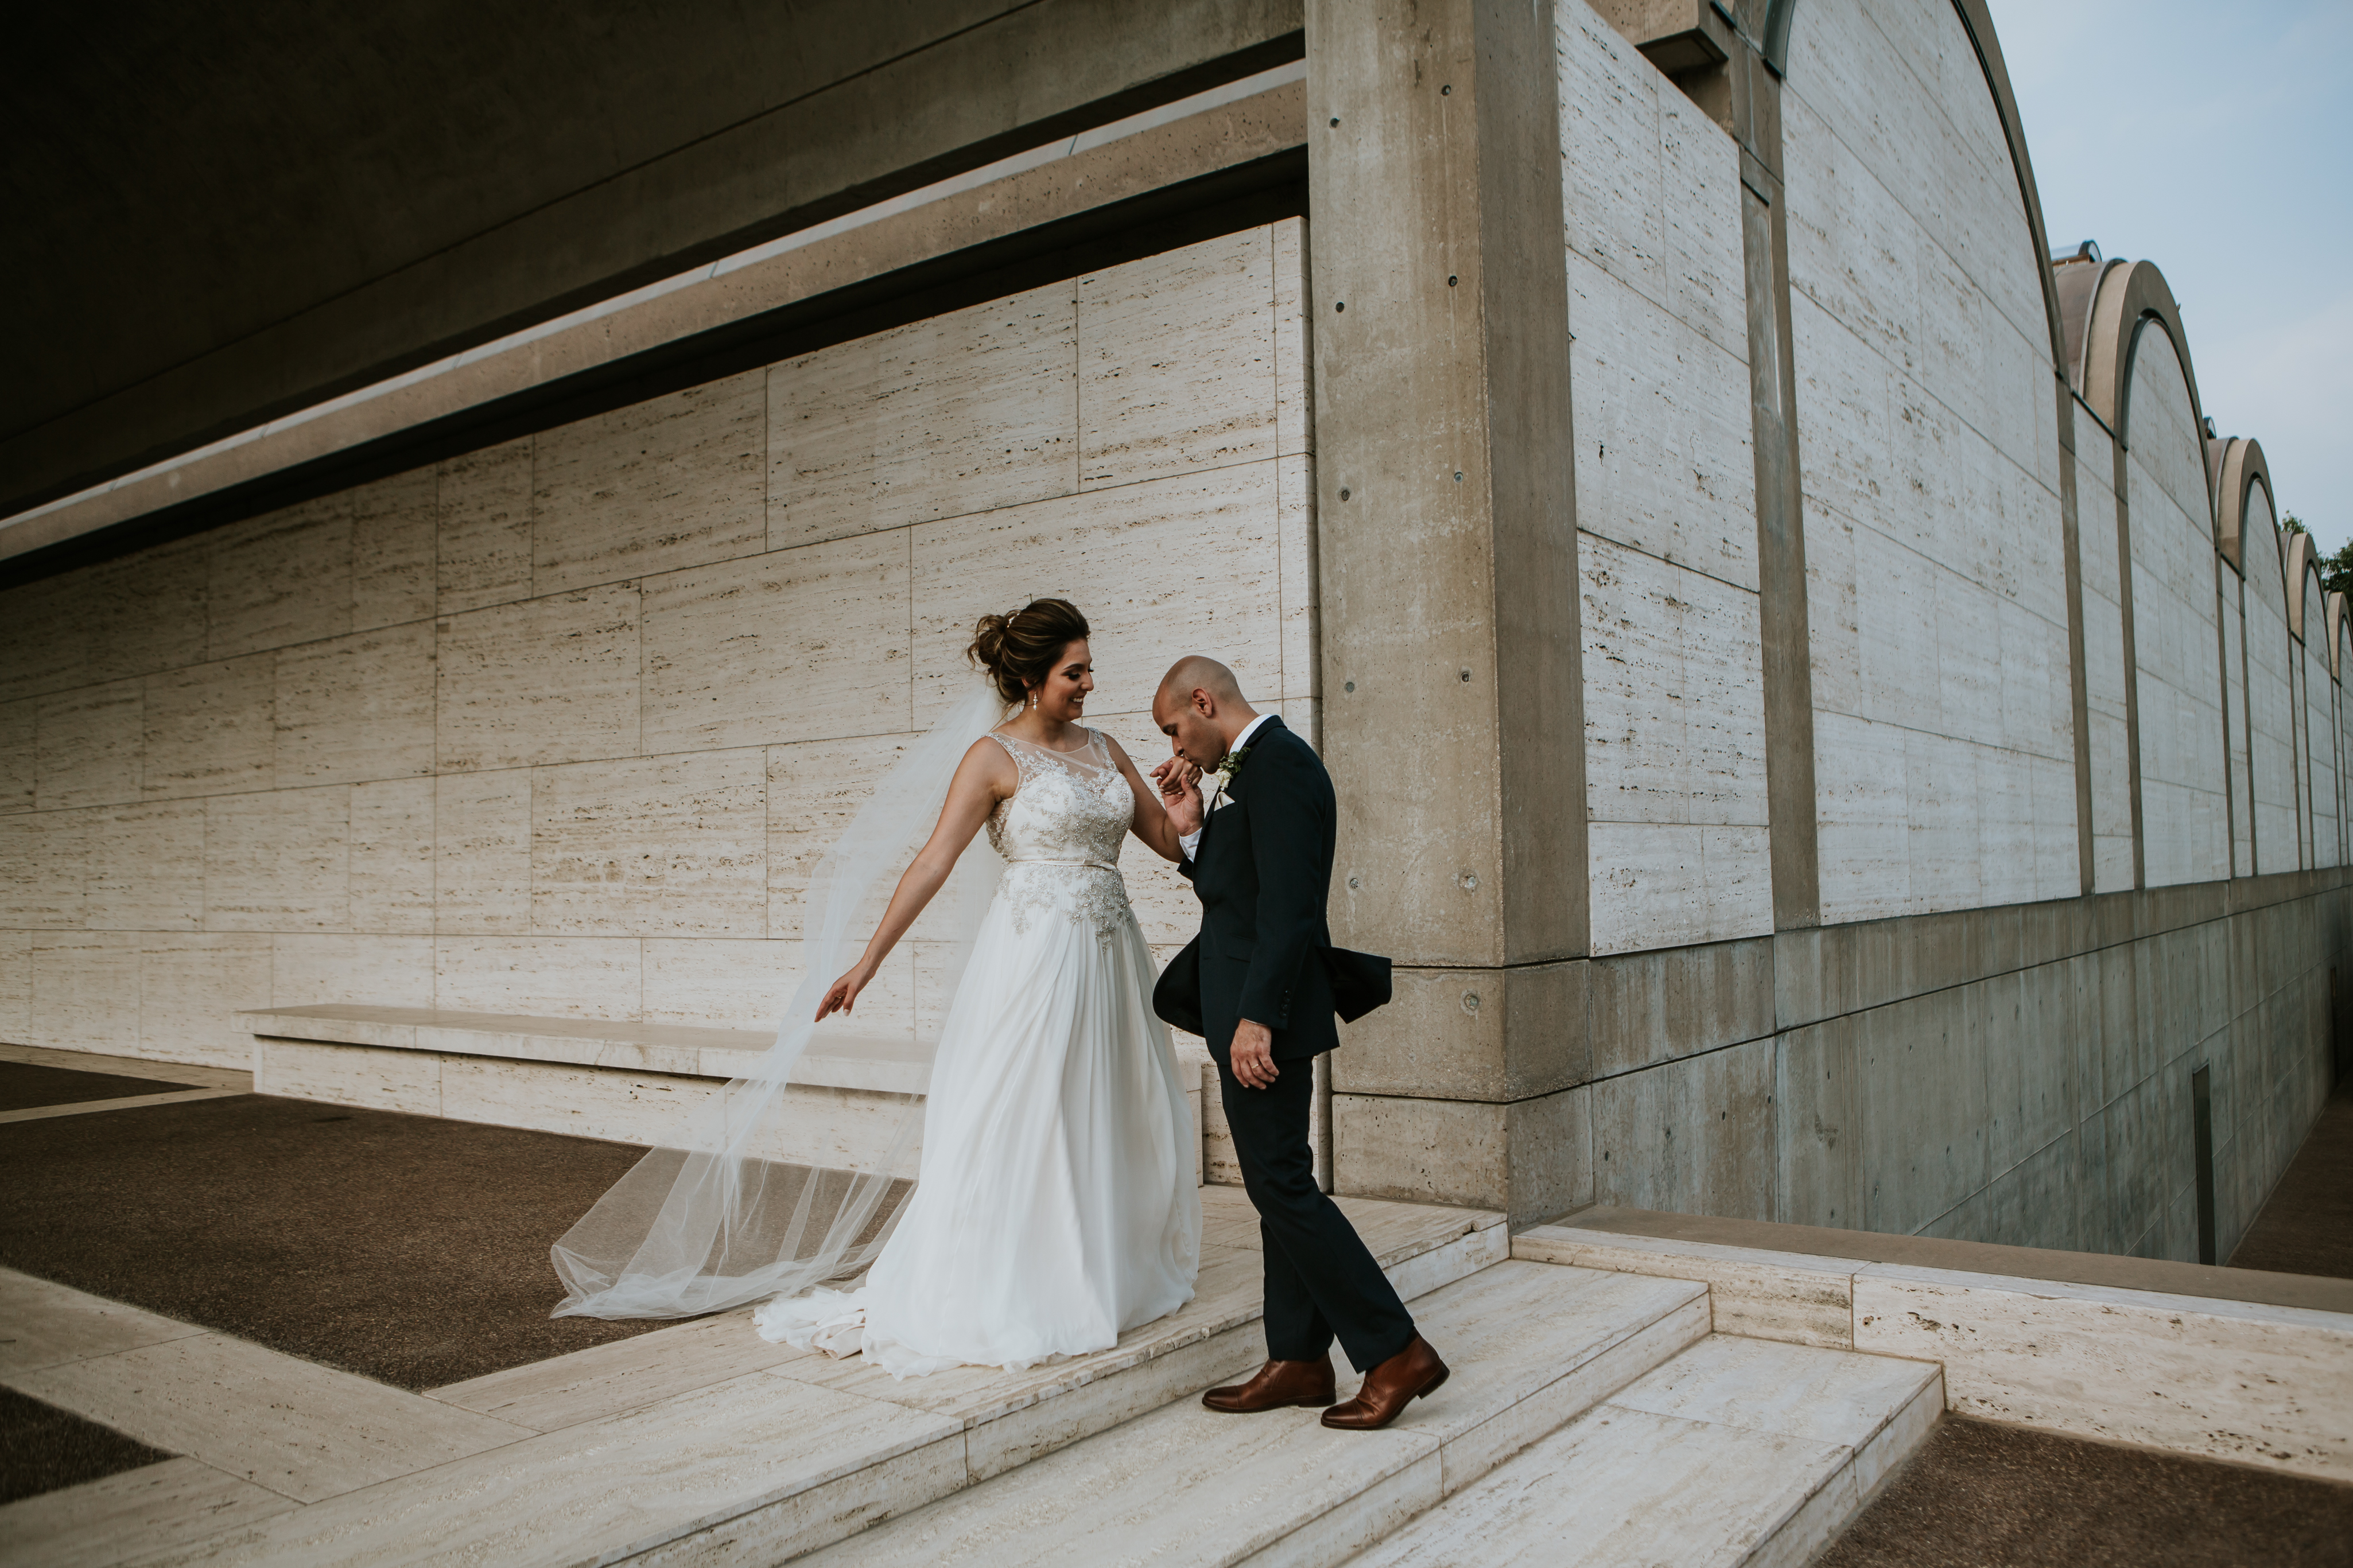 Wedding Photography Inspiration by Amare Couture